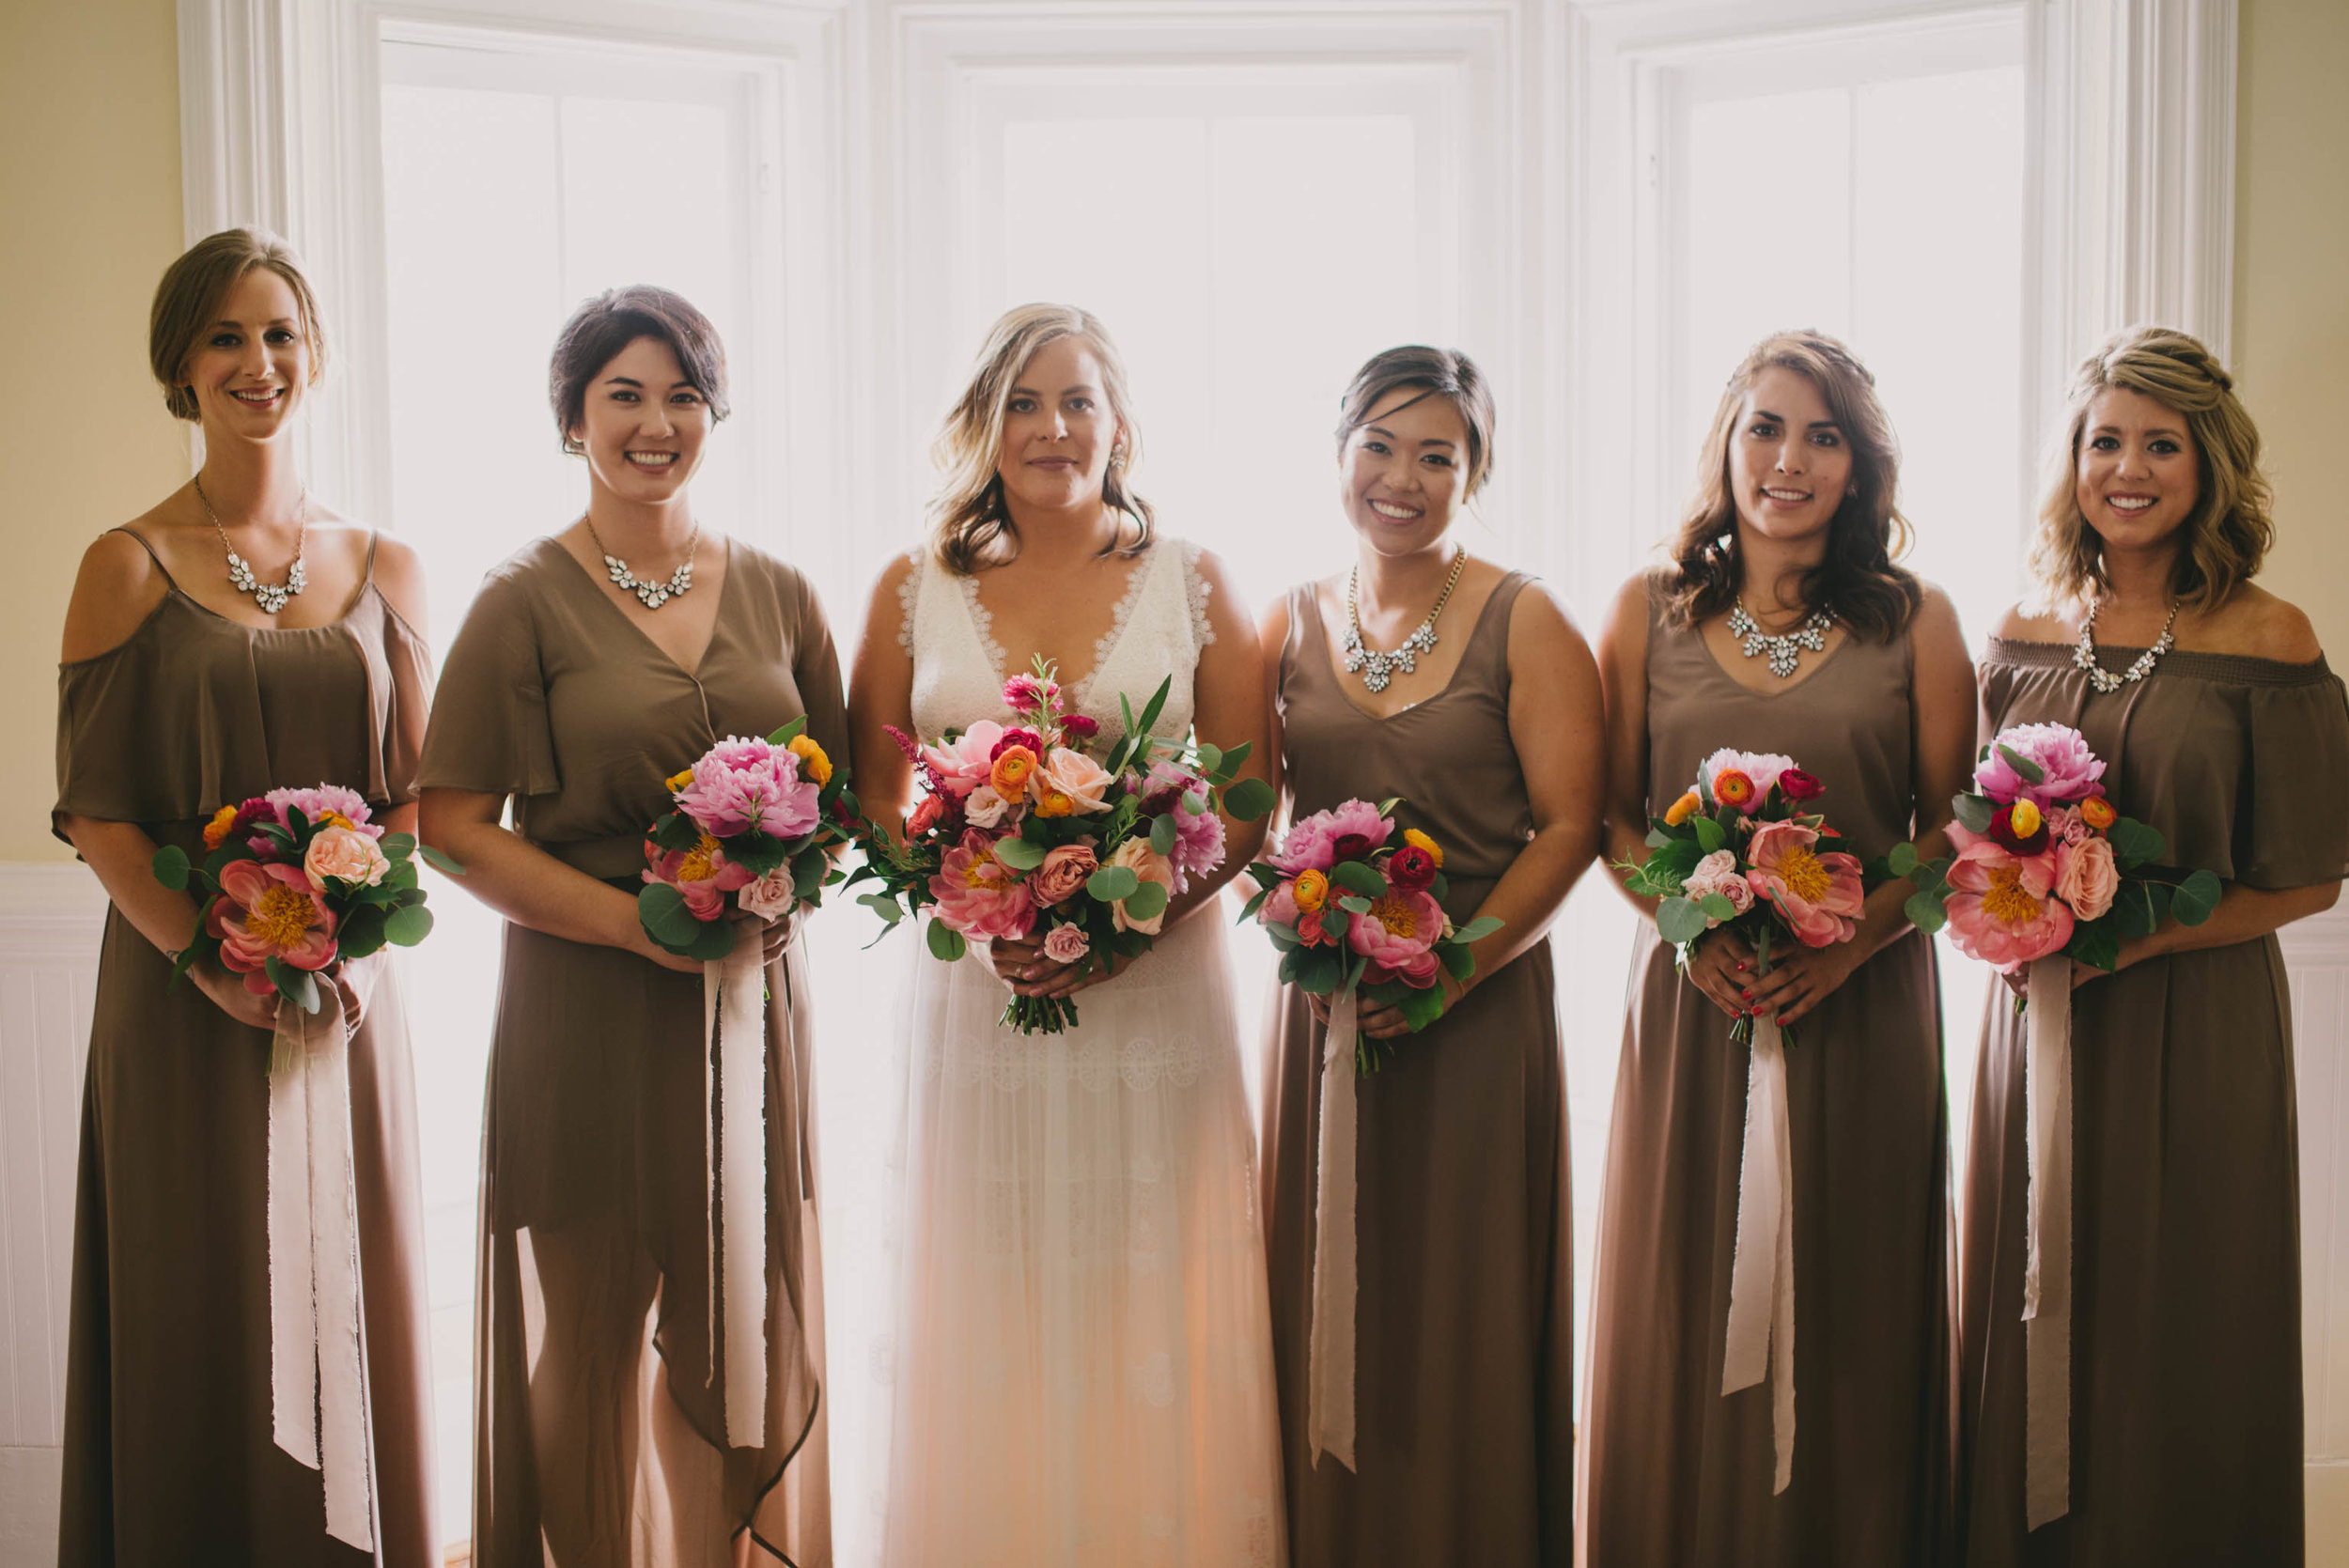 mims-house-wedding-bride-and-bridesmaids.jpg